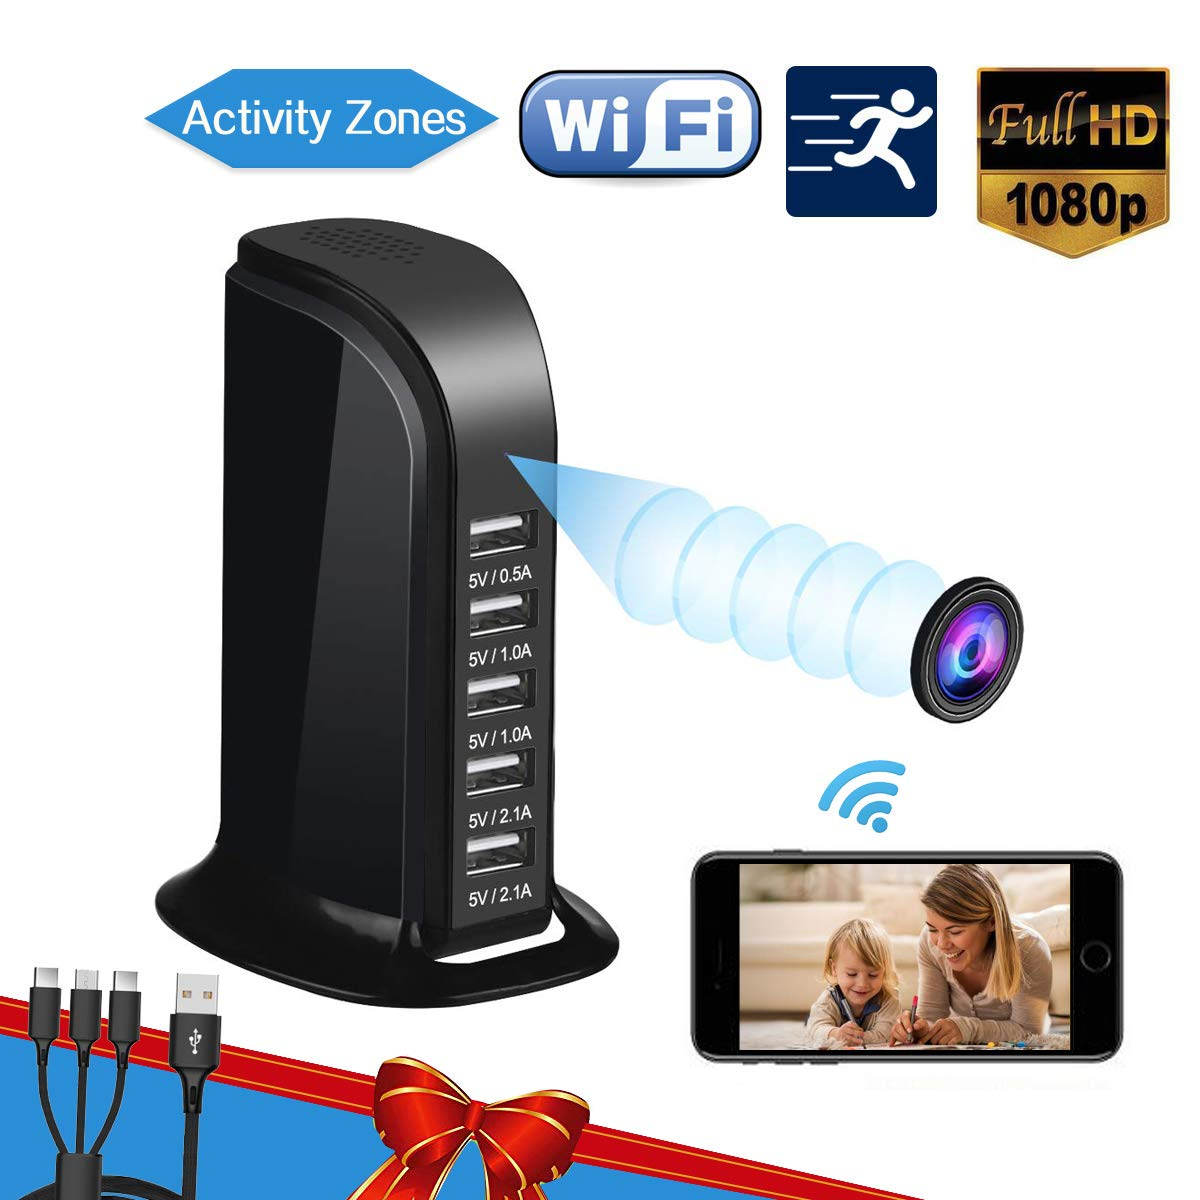 Recorder Wireless Security Detection Upgraded